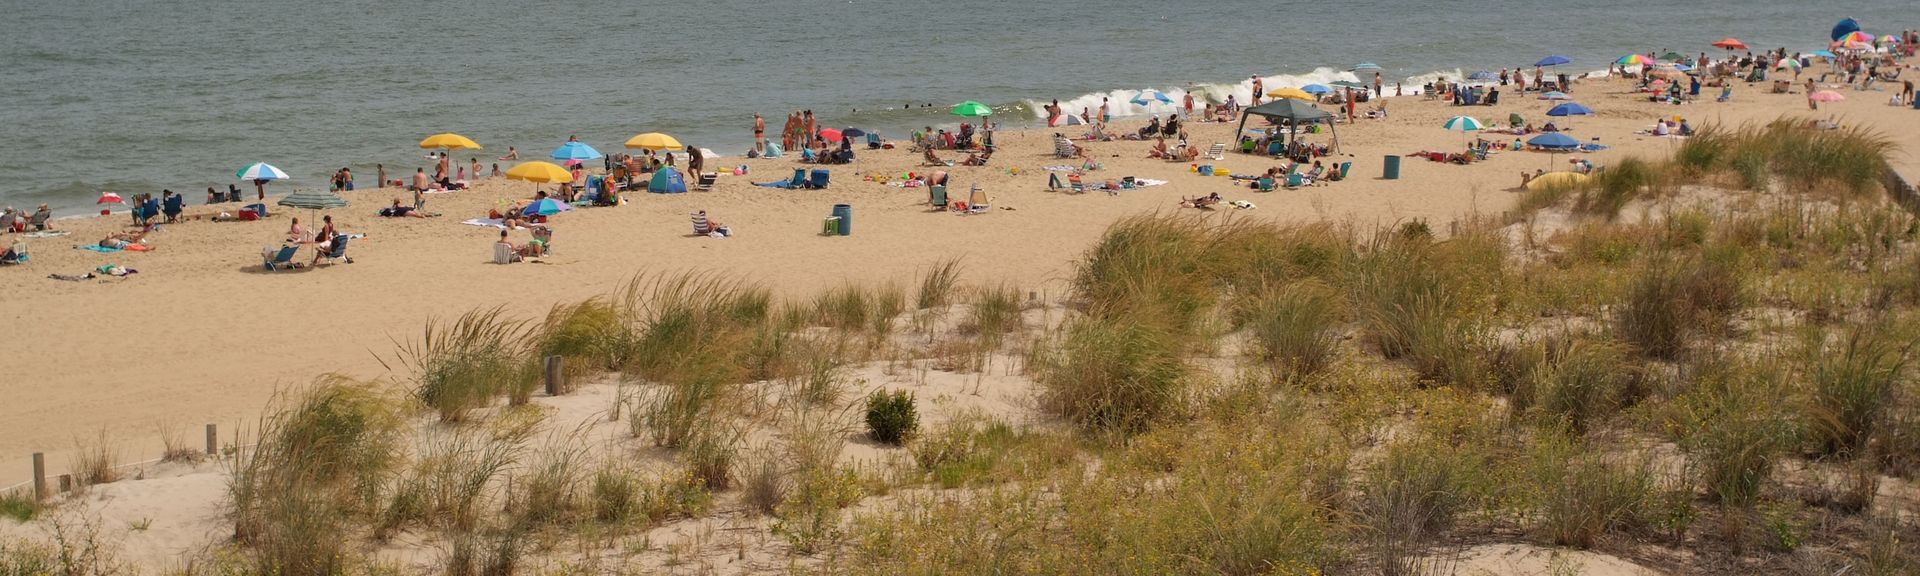 Maryland Beach, Ocean City, Maryland, États-Unis d'Amérique